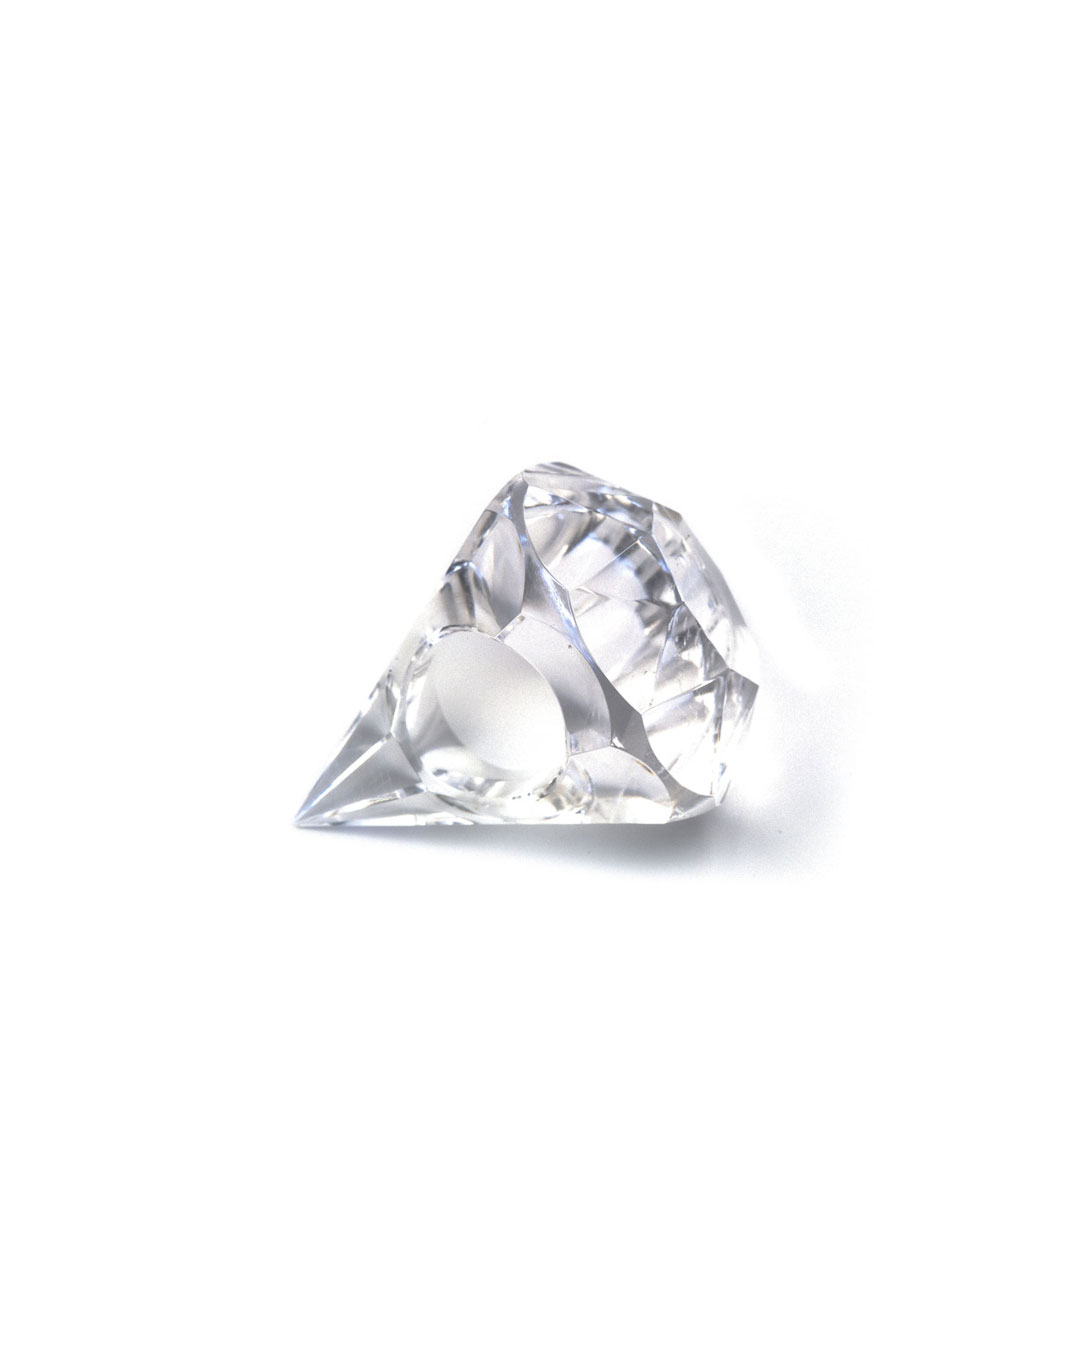 Herman Hermsen, untitled, 1989, ring; rock crystal, 50 x 40 x 40 mm, €2100